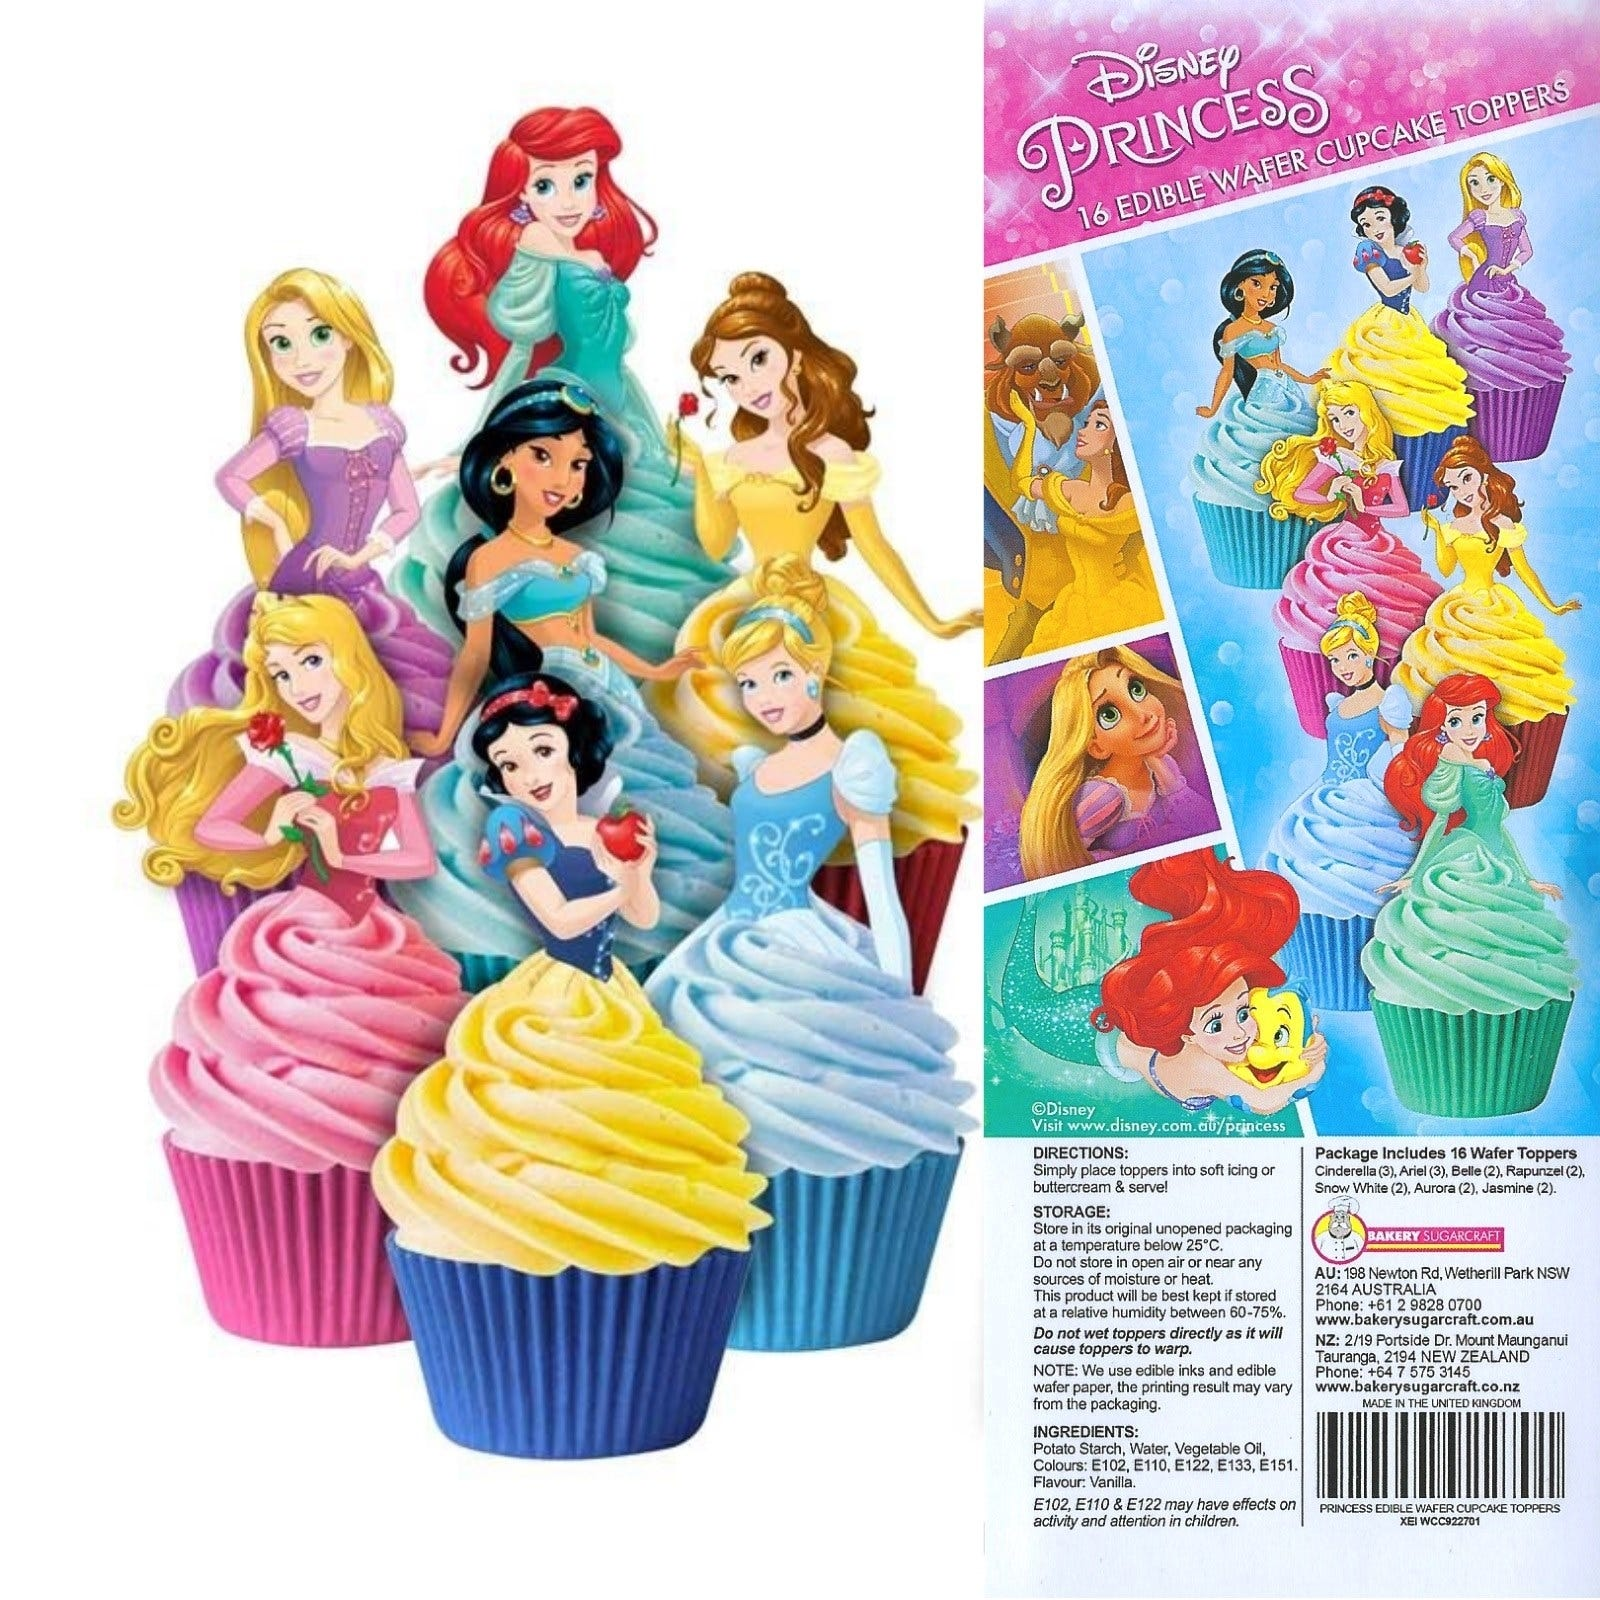 Details About DISNEY PRINCESS PARTY PACK OF 16 EDIBLE CUPCAKE WAFER DECORATIONS TOPPERS